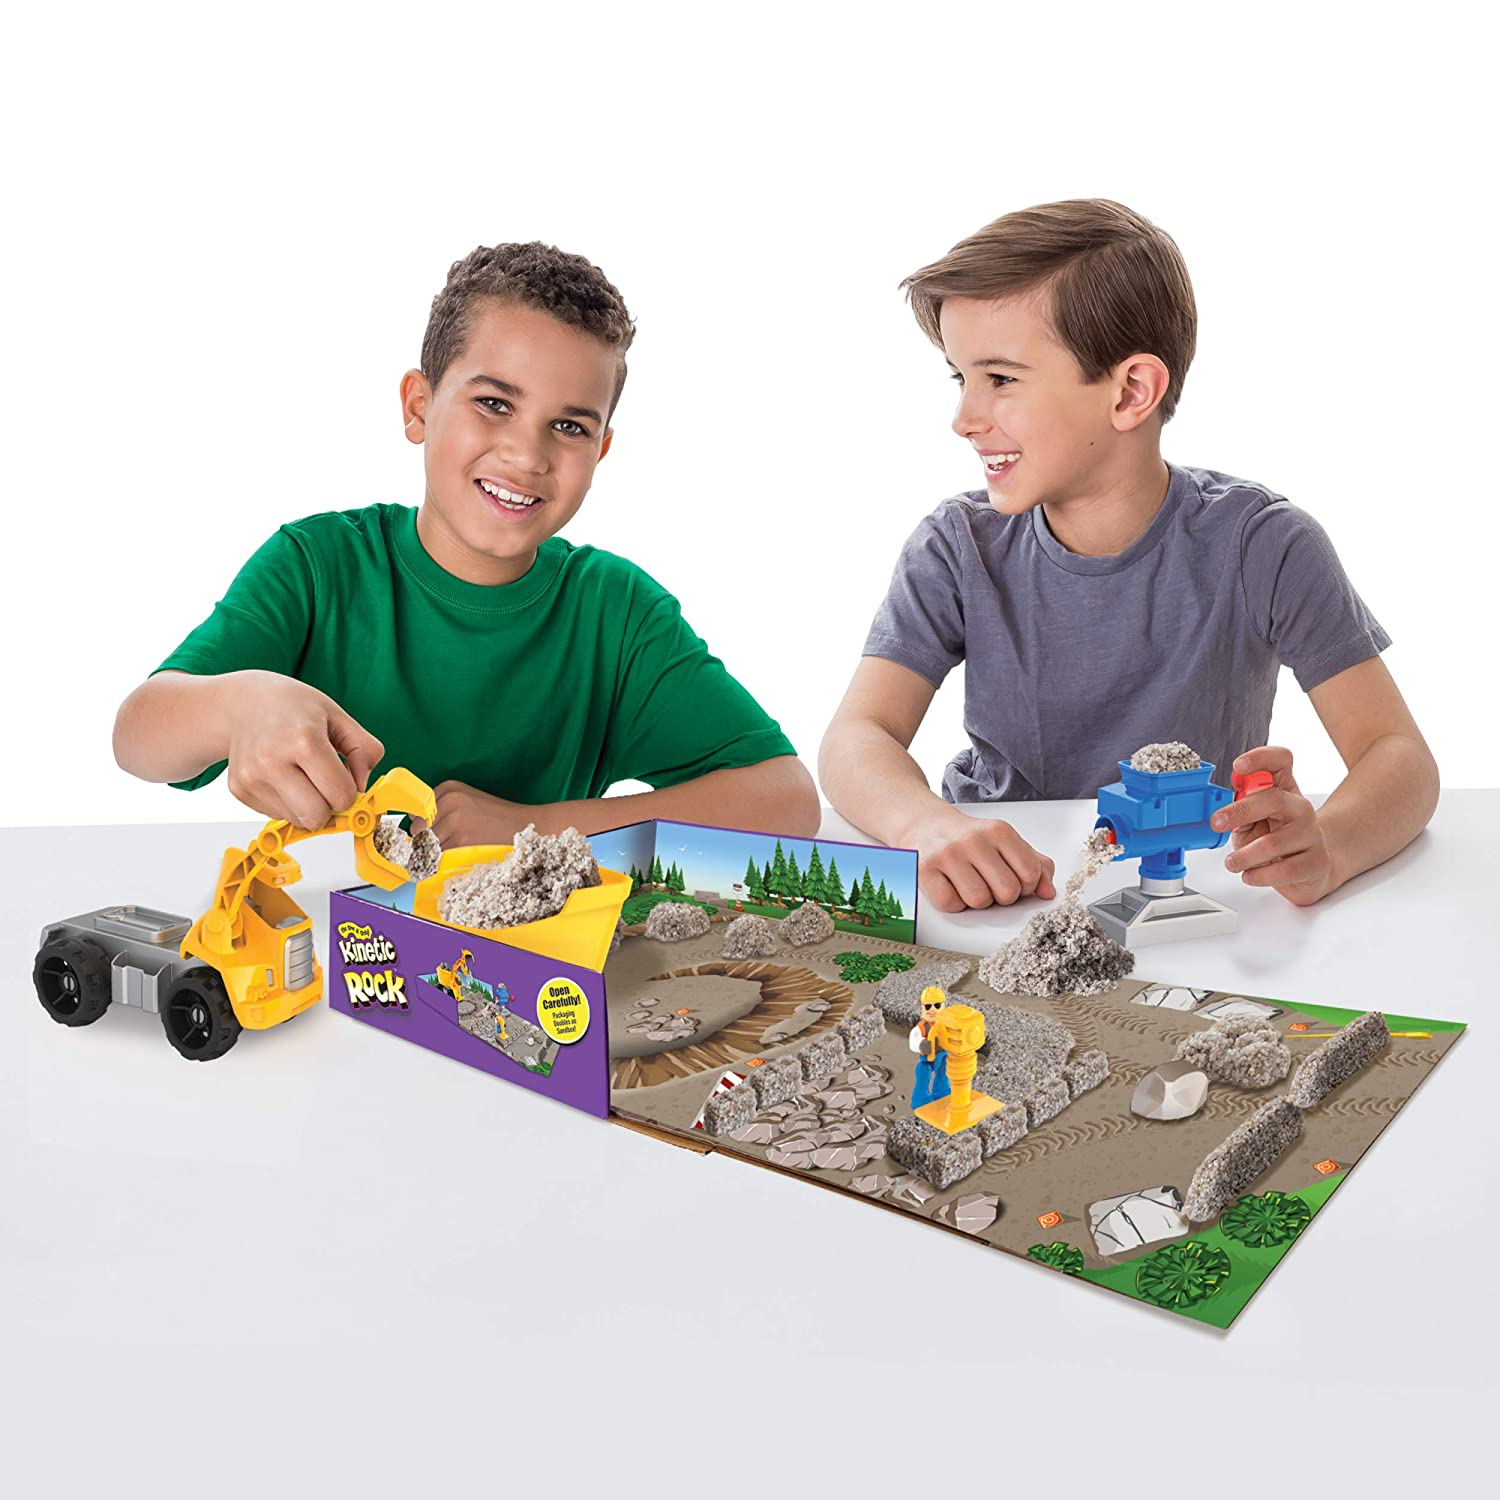 Rock Crusher Toy Kit with Construction Tools for Ages 3 and Up Kinetic Rock